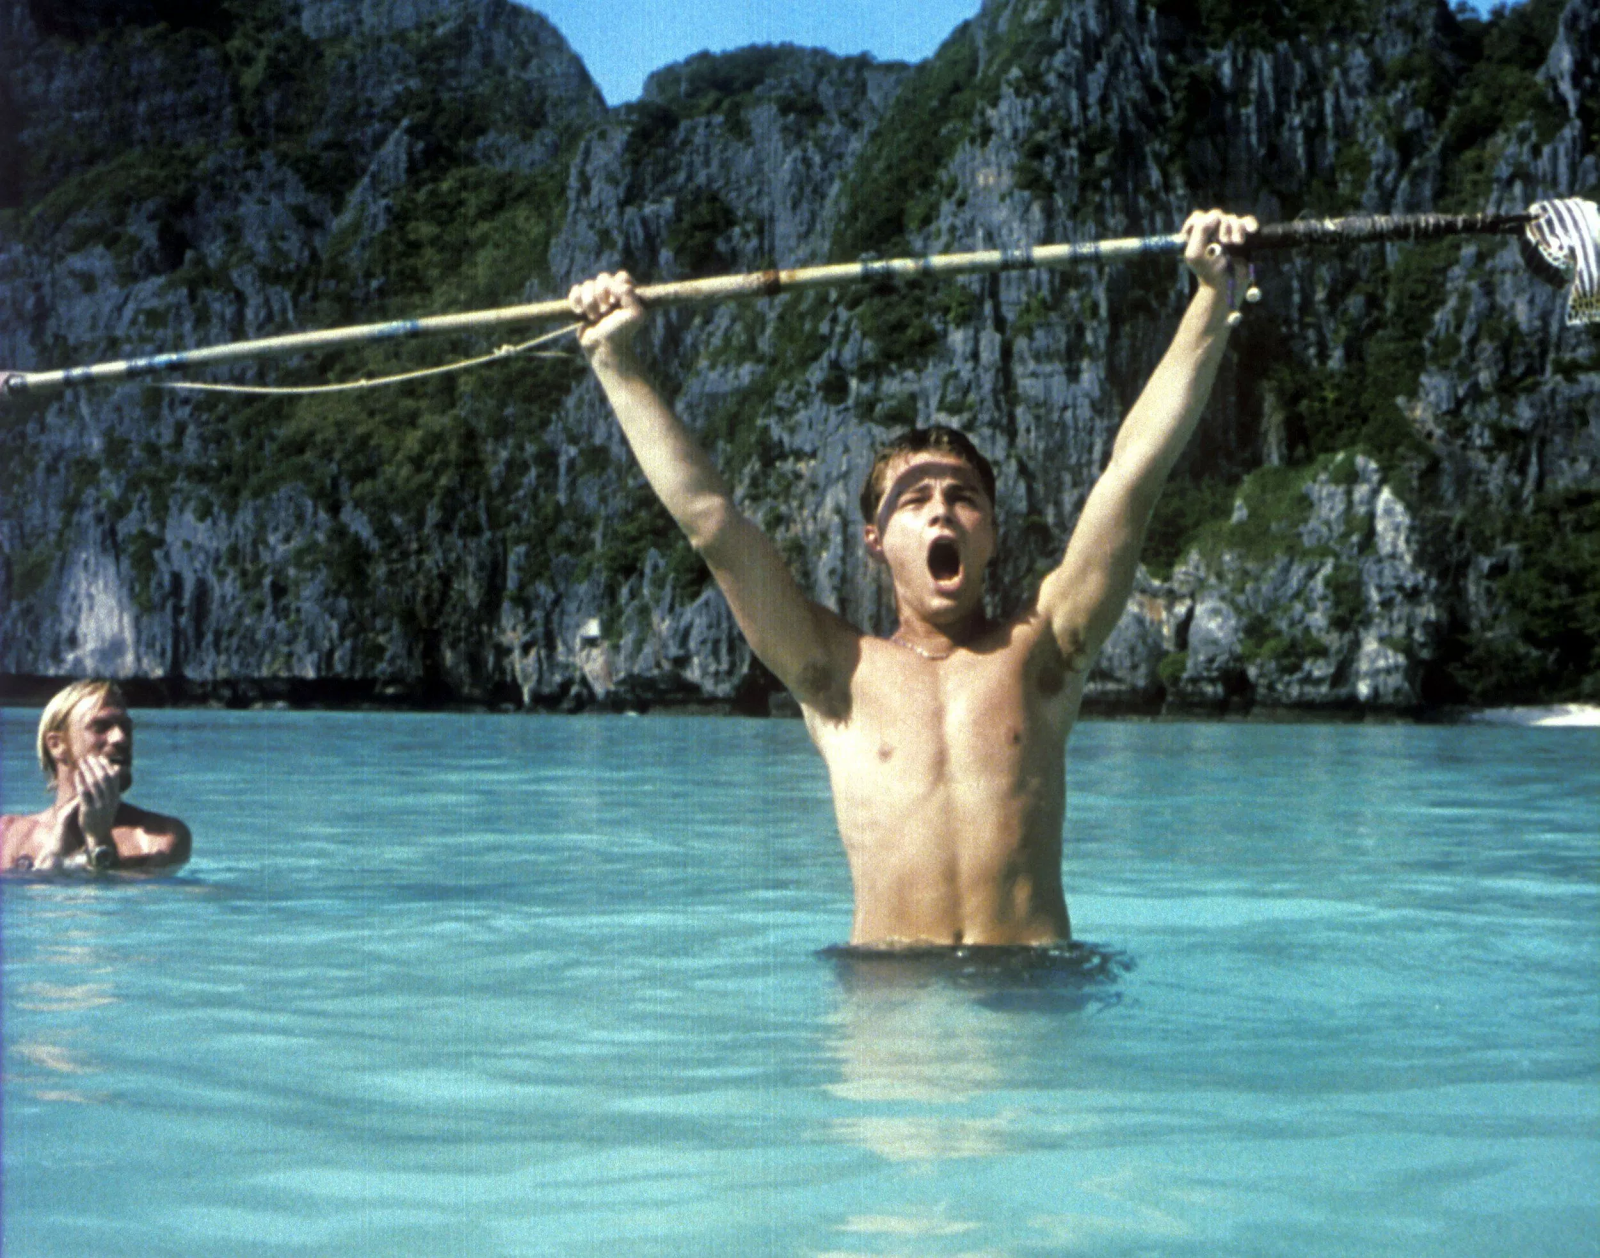 Armchair Adventures: 10 Films to Inspire Your Travels